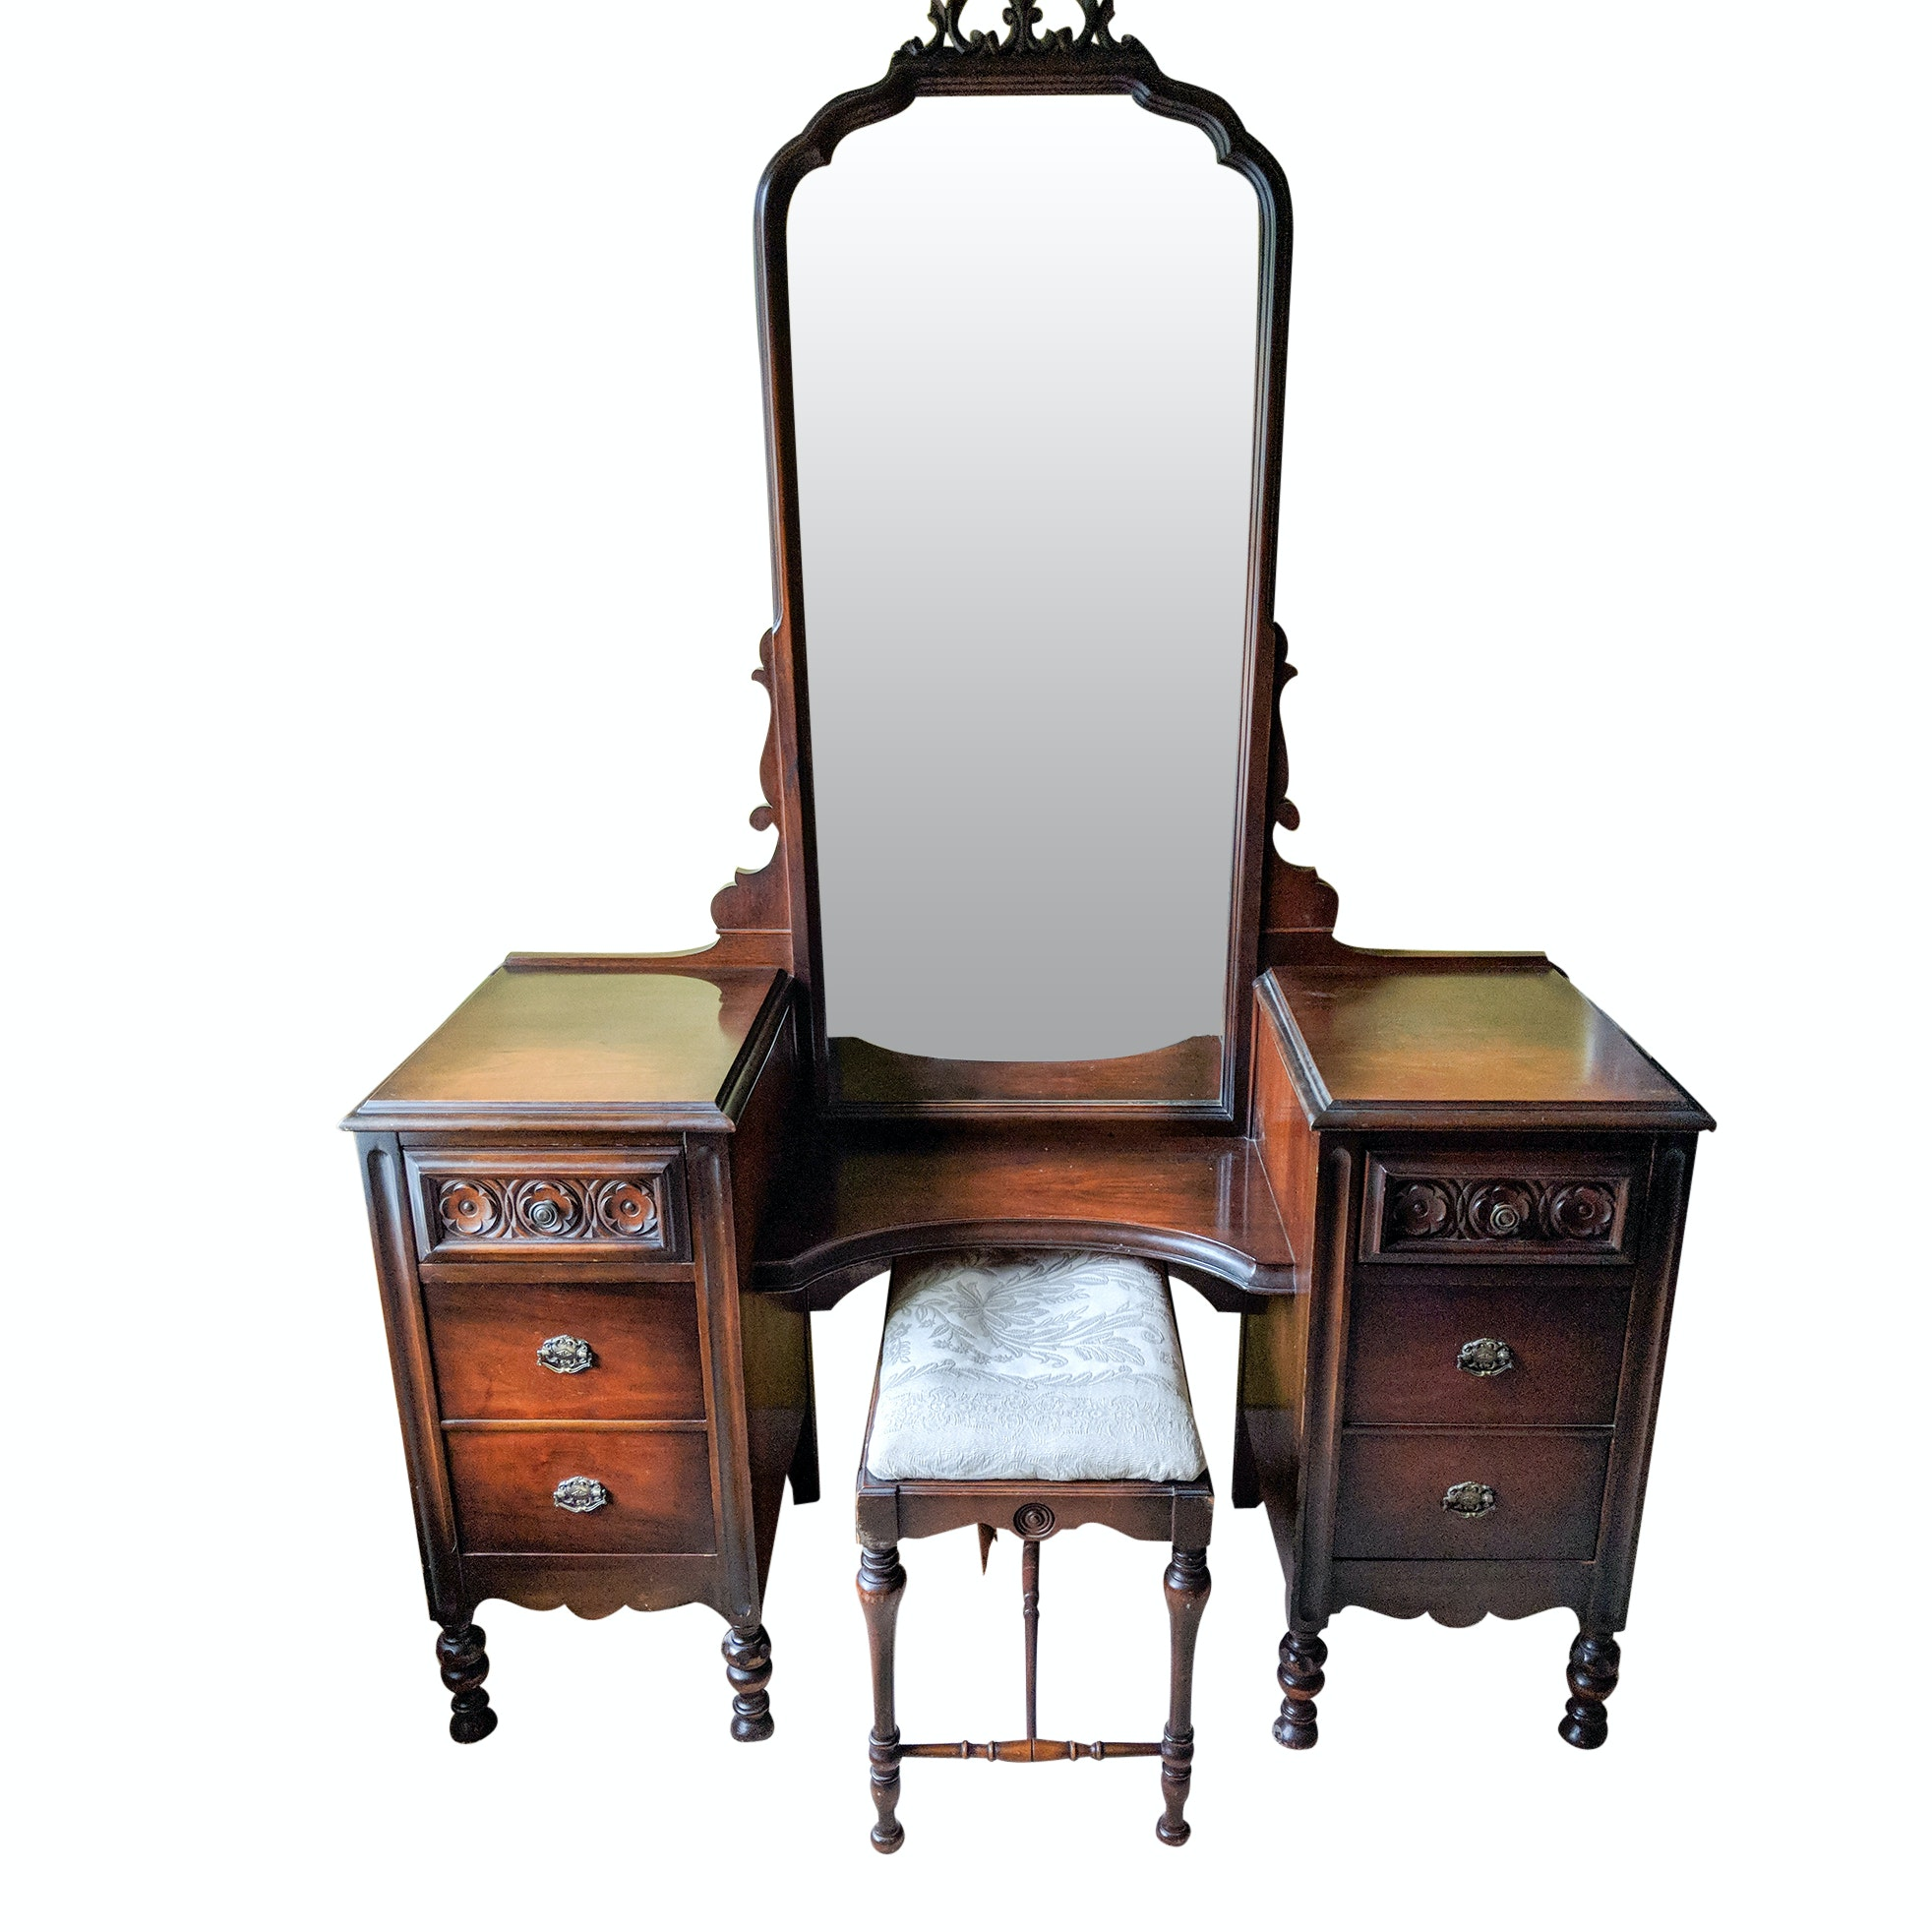 Carved Mahogany Vanity with Mirror and Upholstered Stool by J. B. Van Sciver